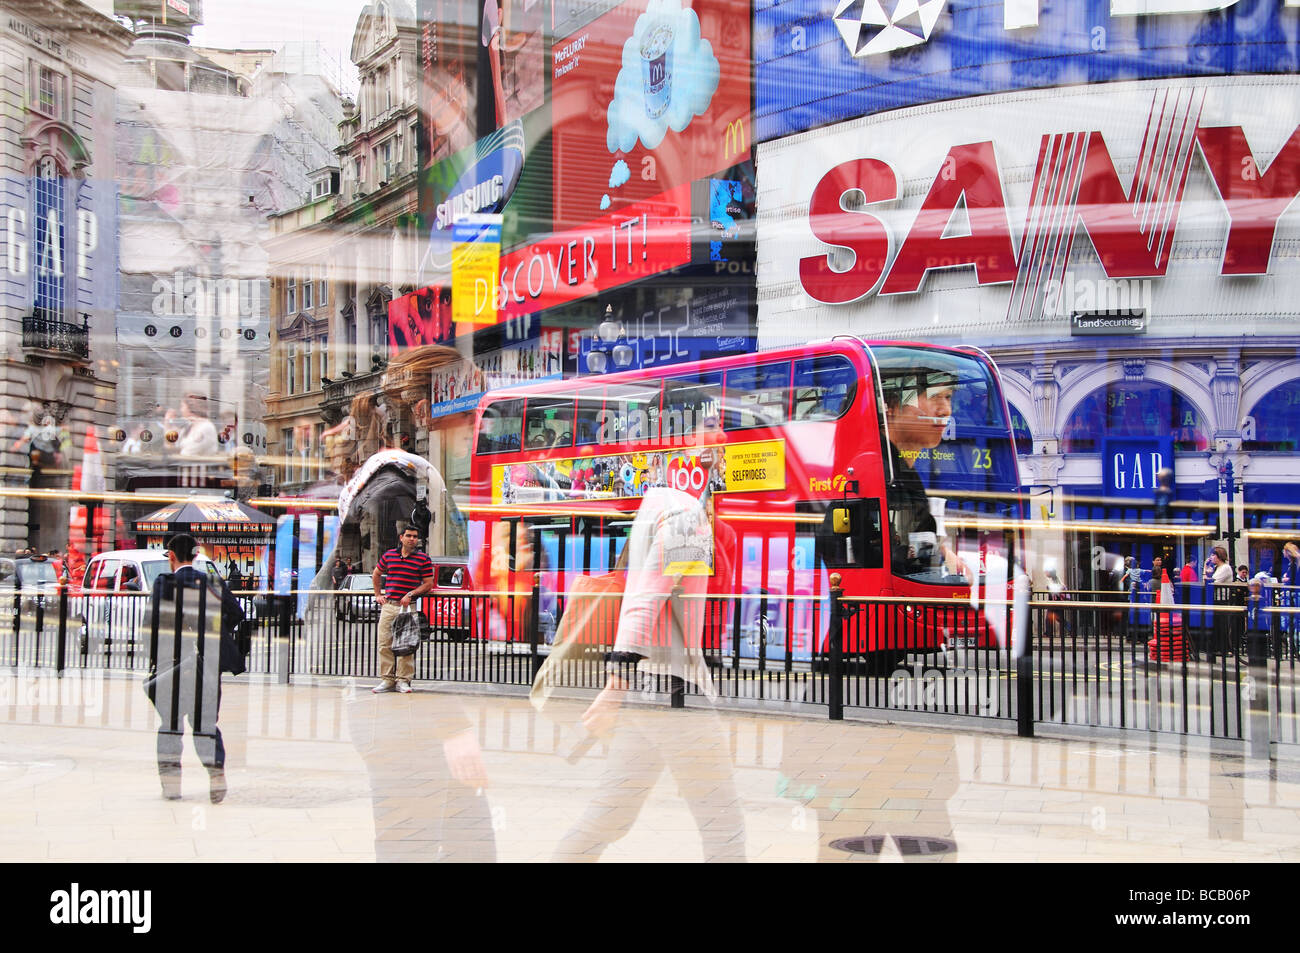 Piccadilly Circus in the centre of London, England - Stock Image